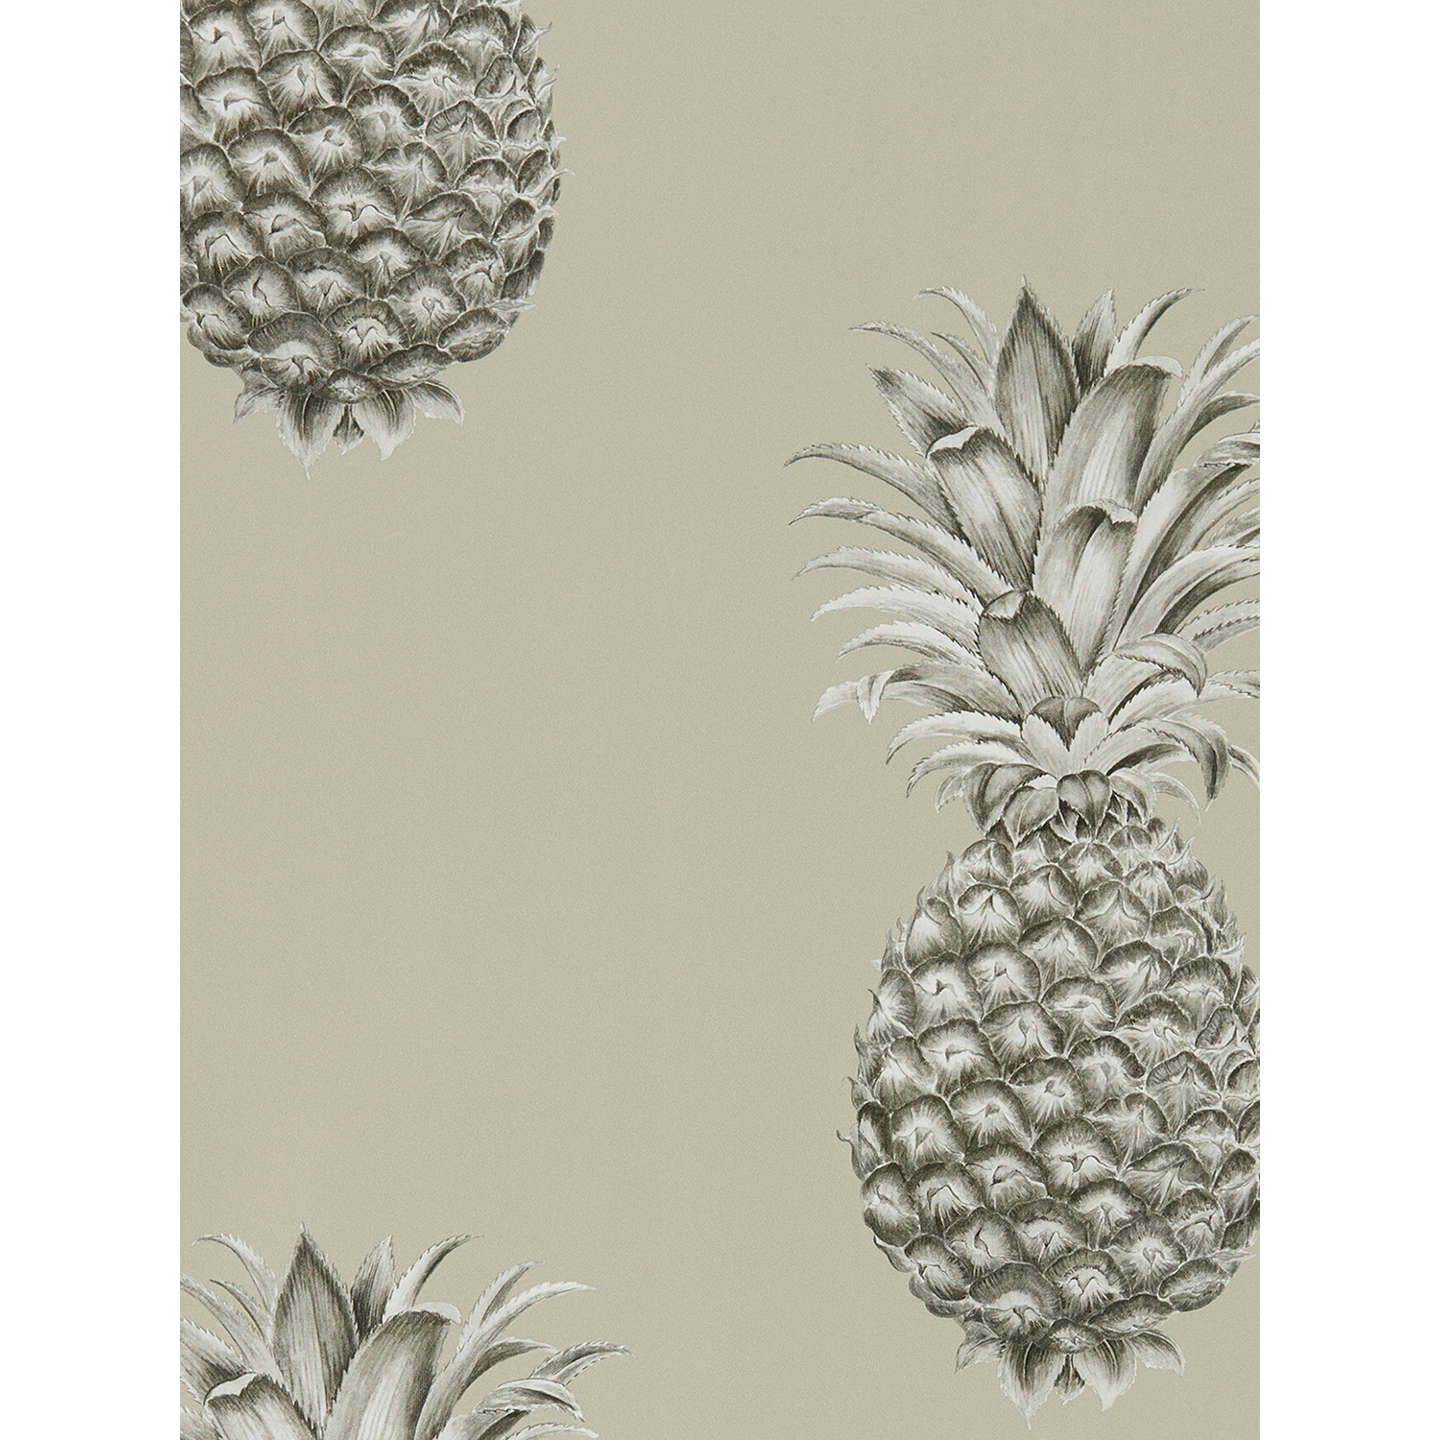 Cool Wallpaper Mac Pineapple - 236735785?$rsp-pdp-main-1440$  Picture_481488.com/is/image/JohnLewis/236735785?$rsp-pdp-main-1440$